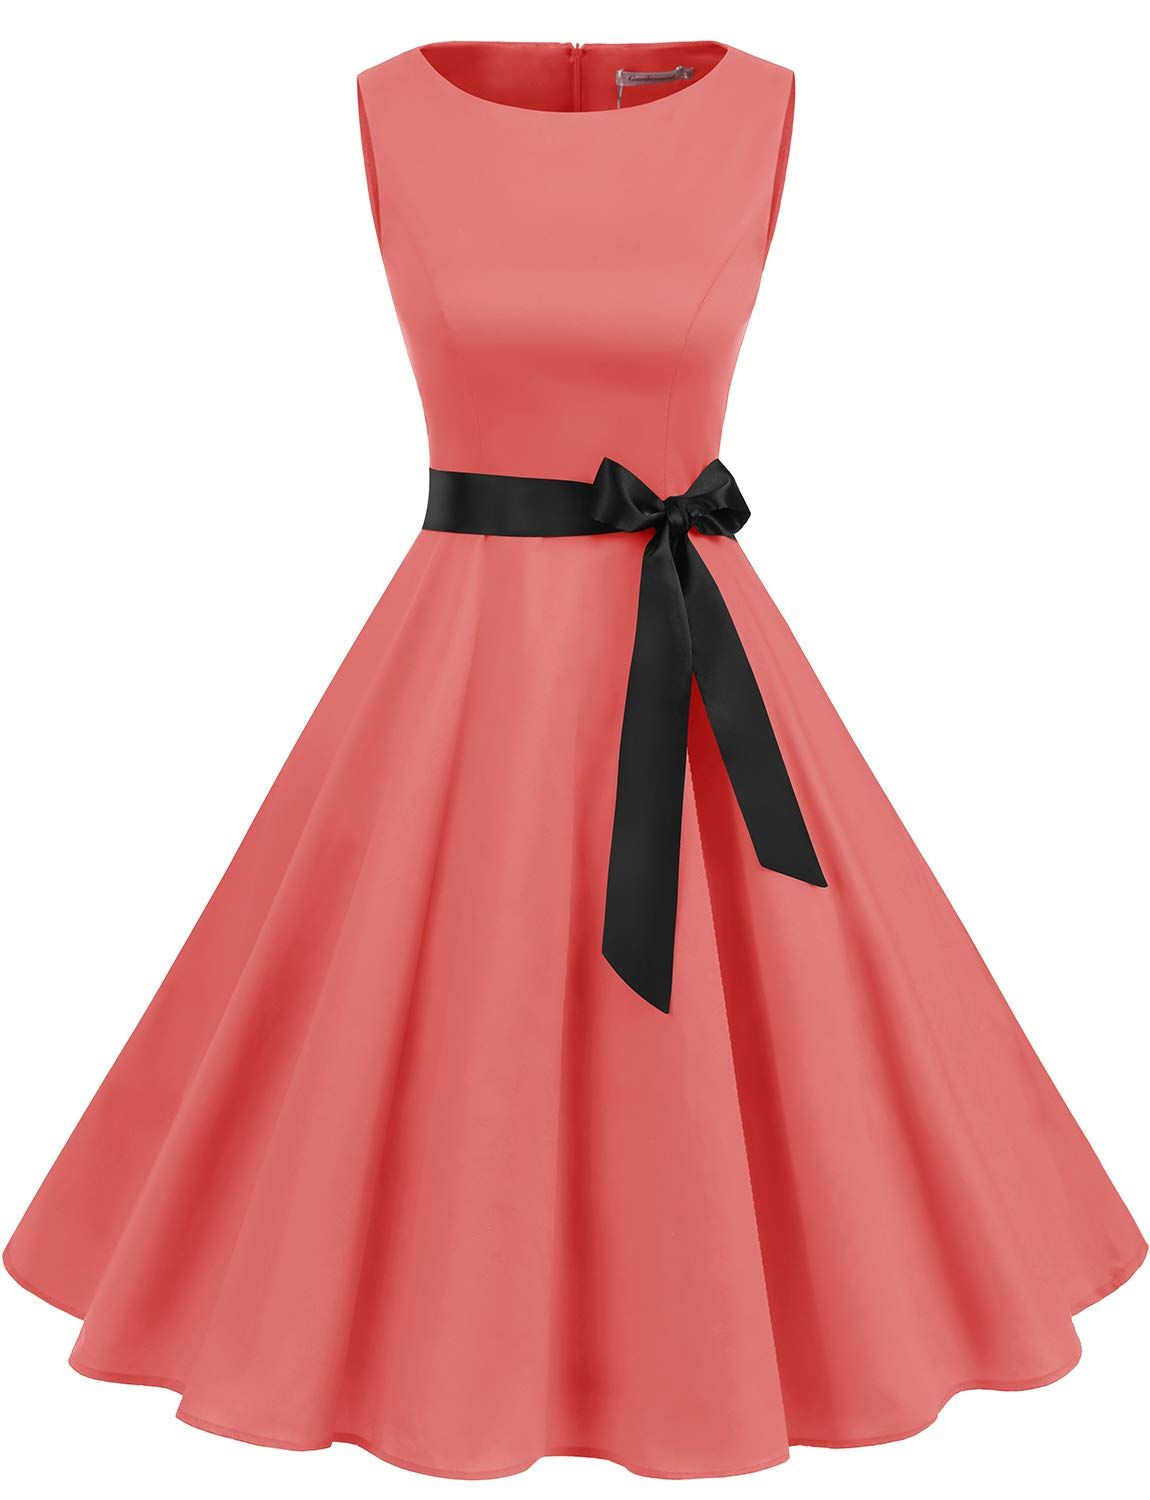 5ae1dcc9850 Amazon.com  Gardenwed Women s Audrey Hepburn Rockabilly Vintage Dress 1950s  Retro Cocktail Swing Party